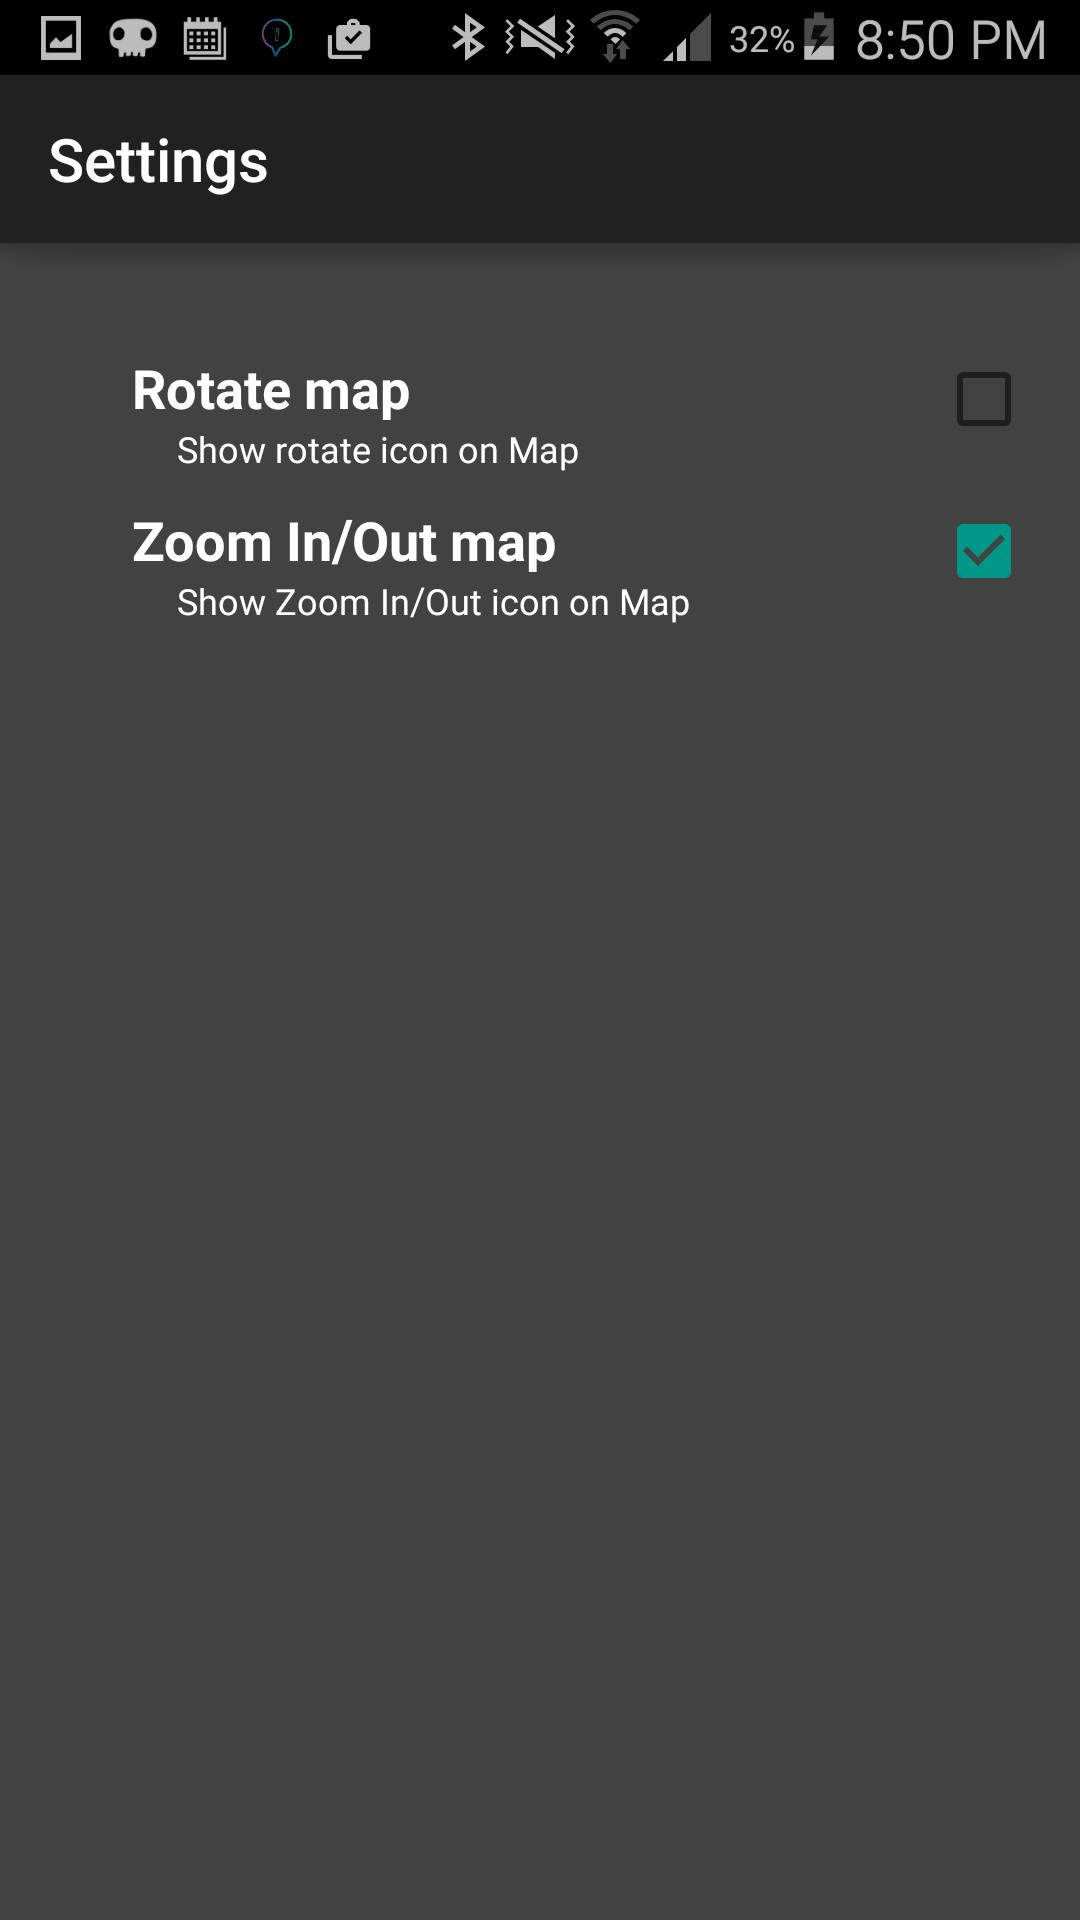 Download New York Subway Map.New York Subway Map Nyc For Android Apk Download